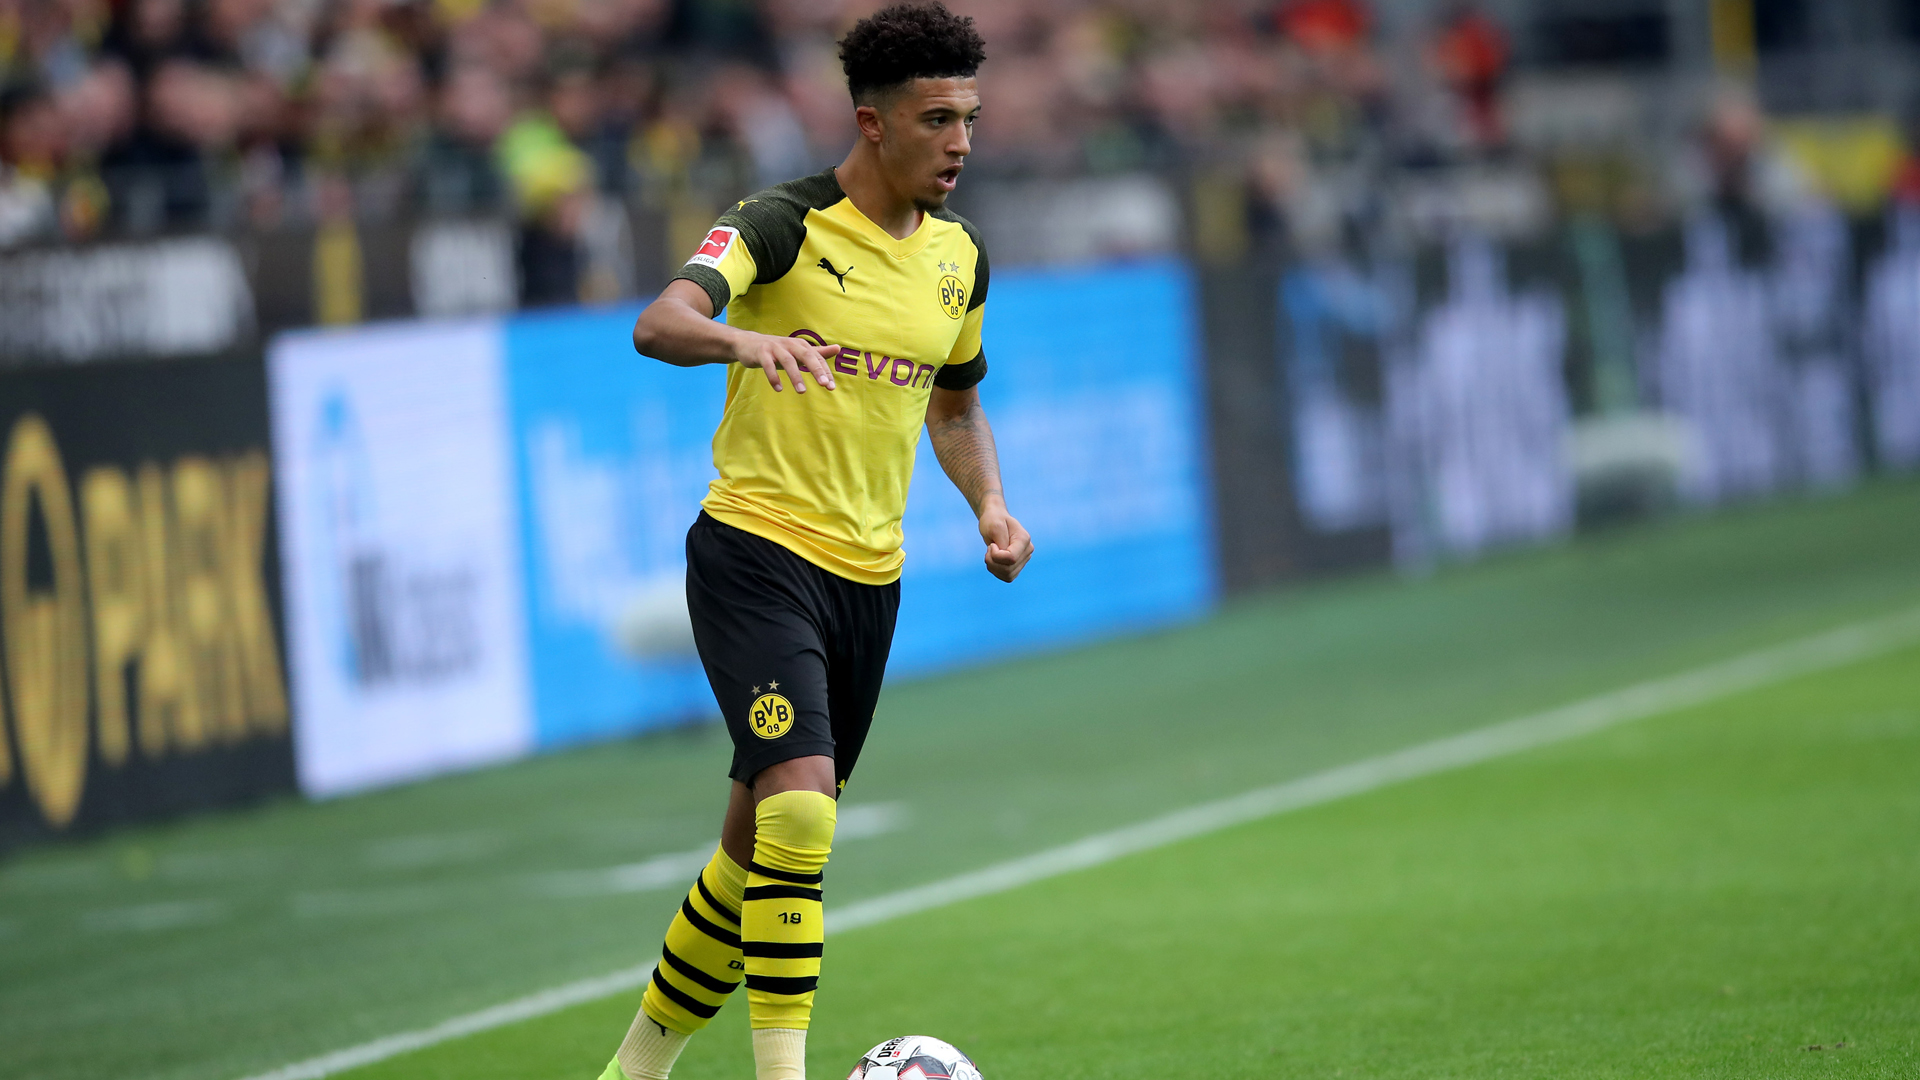 'At 18, that's something special': Borussia Dortmund coach hails Jadon Sancho